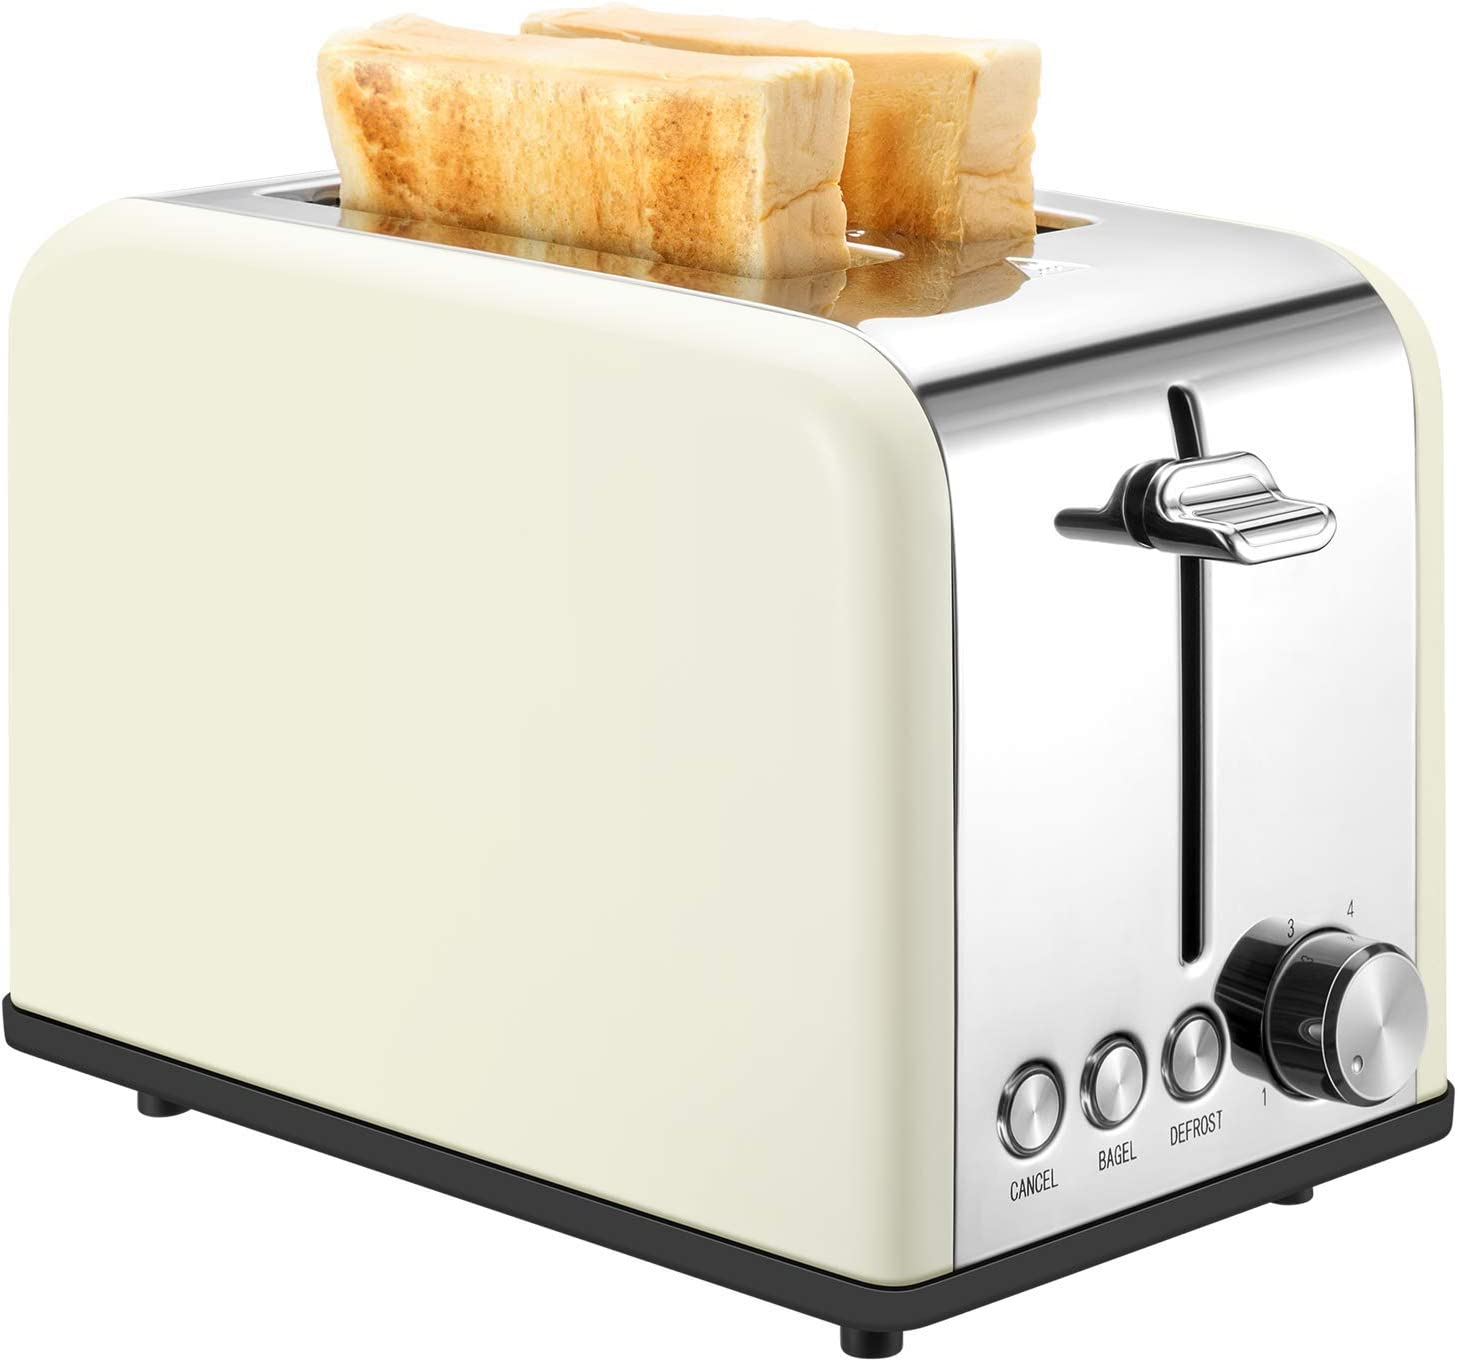 Toaster 2 Slice, Retro Small Toaster with Bagel, Cancel, Defrost Function, Extra Wide Slot Compact Stainless Steel Toasters for Bread Waffles, Cream